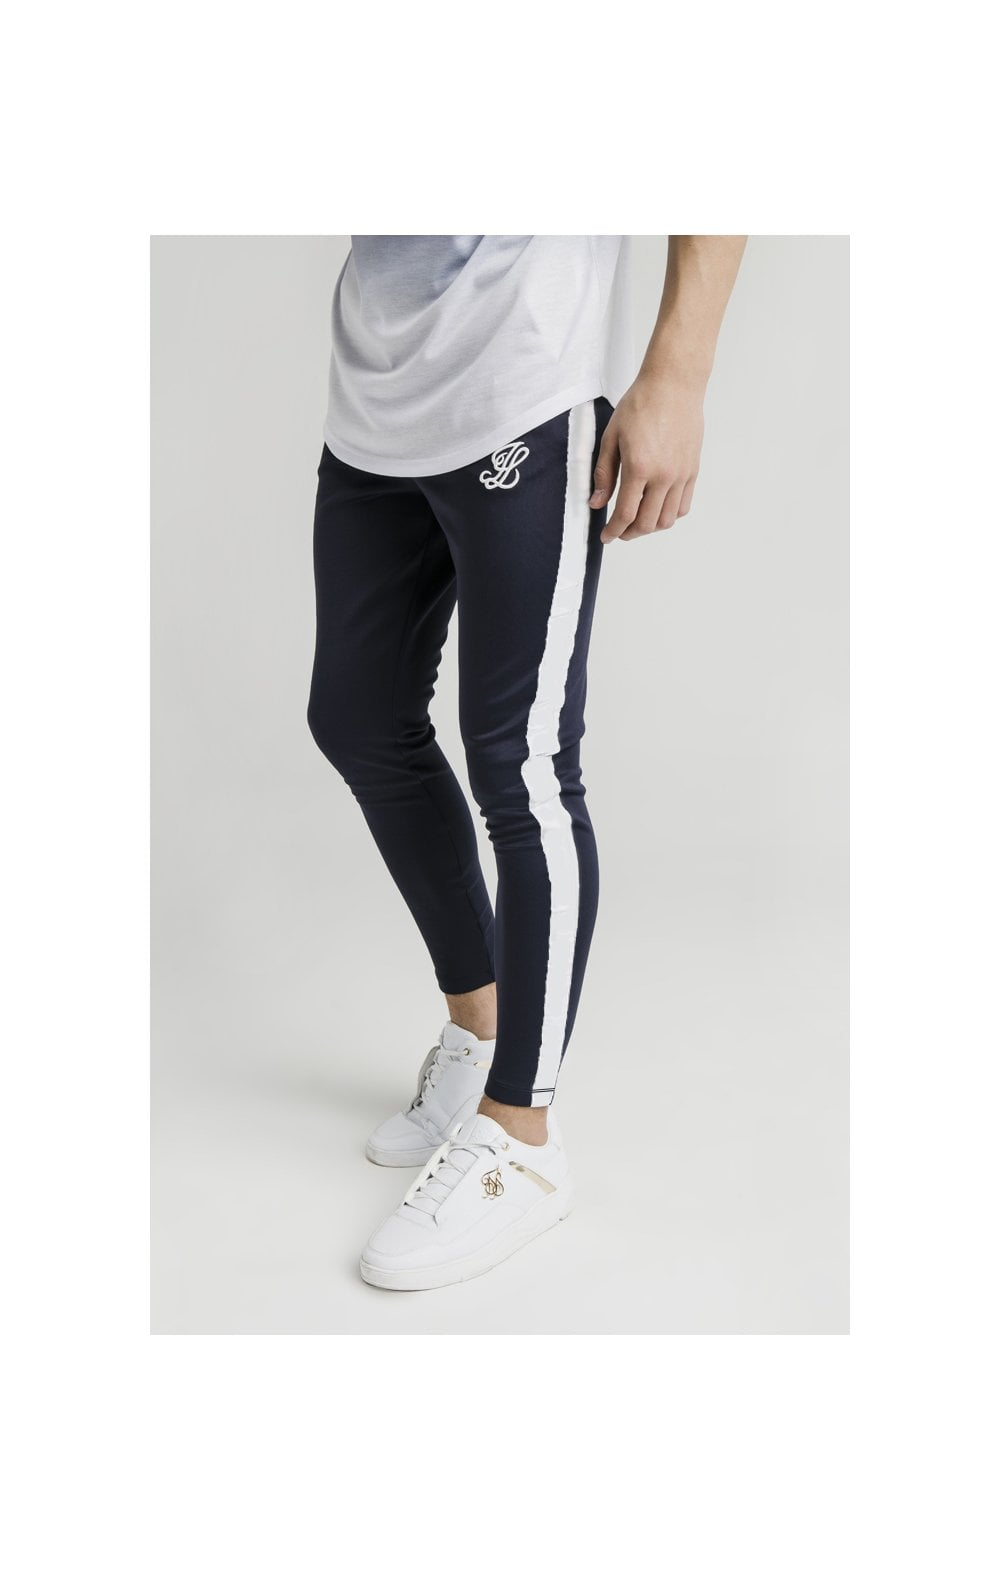 Illusive London Athlete Joggers - Navy & White